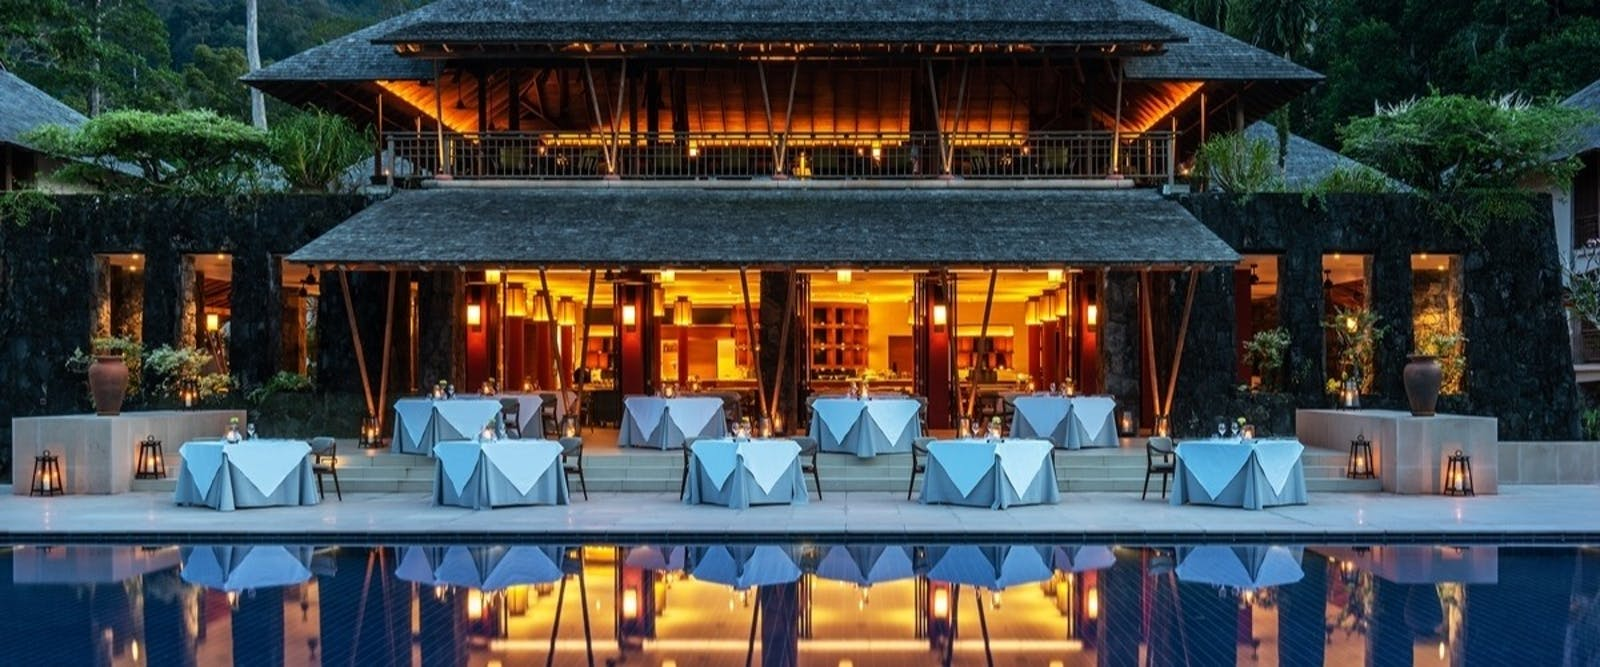 The Dining Room Exterior at The Datai Langkawi, Malaysia